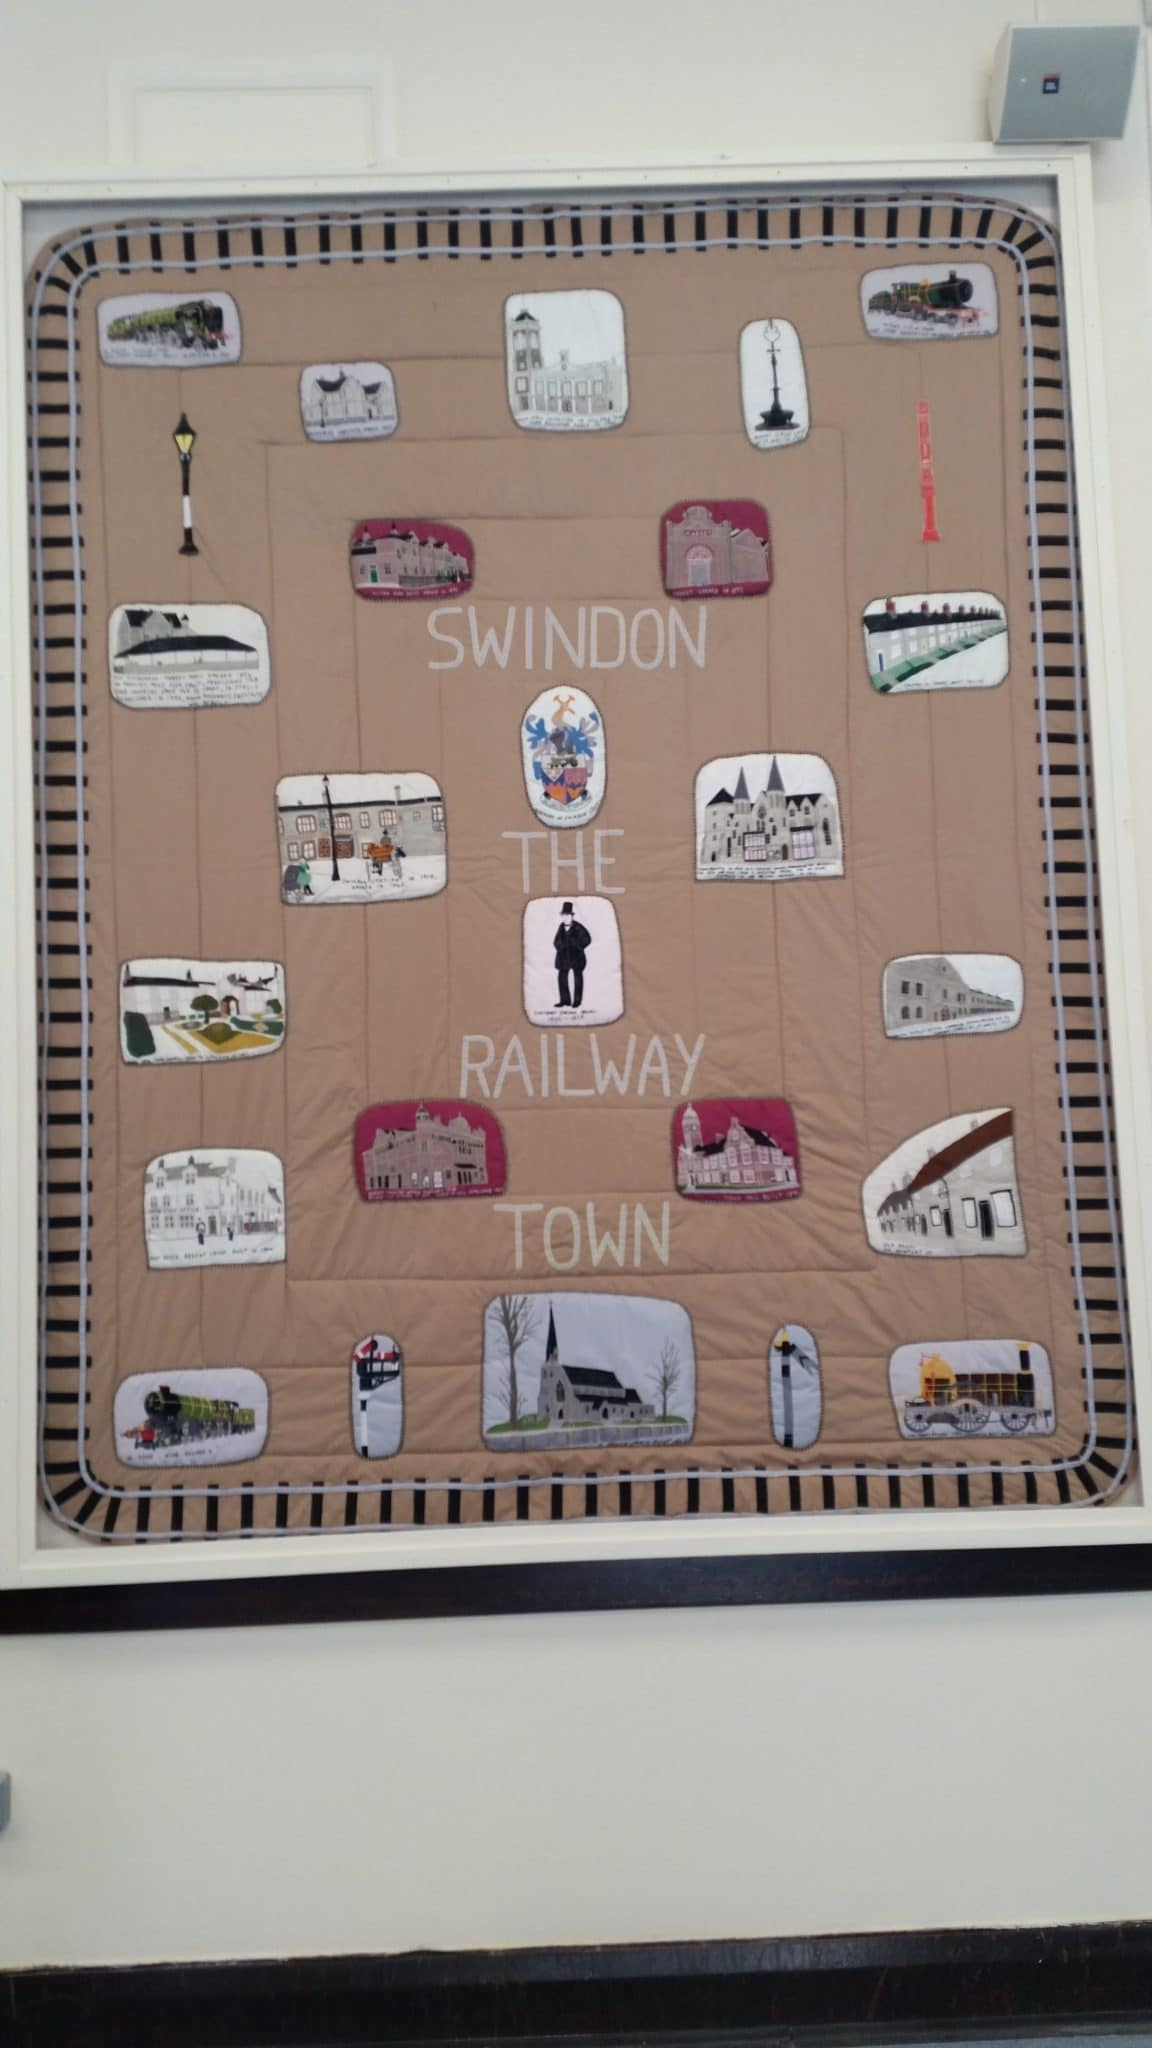 Swindon civic day - Tapestry depicting the railway village key buildings